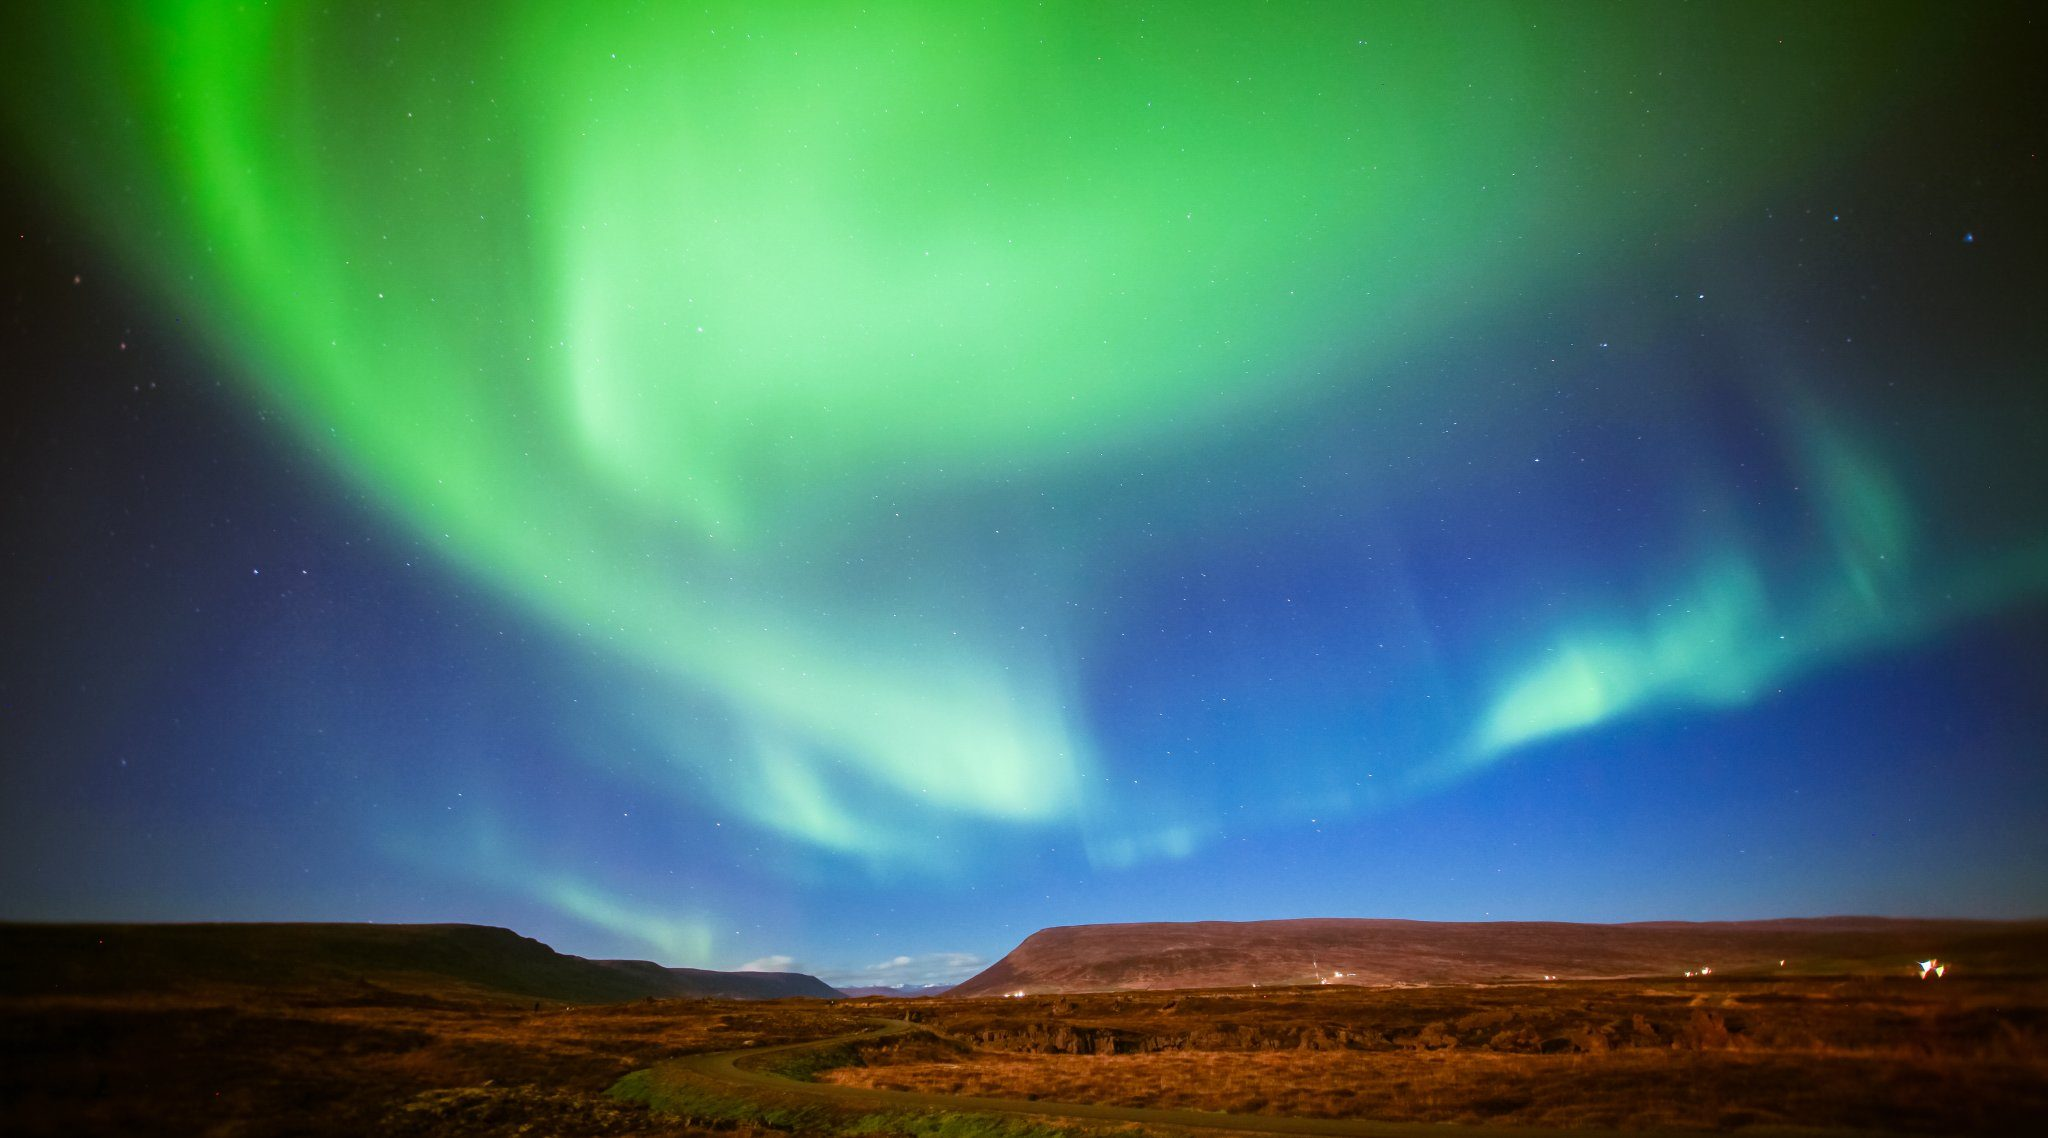 Best Iceland travel tips covering - when is the best time to go? How long do I need? What should I pack? Is Iceland expensive? Do I need a 4x4? We answer all your questions about Iceland!